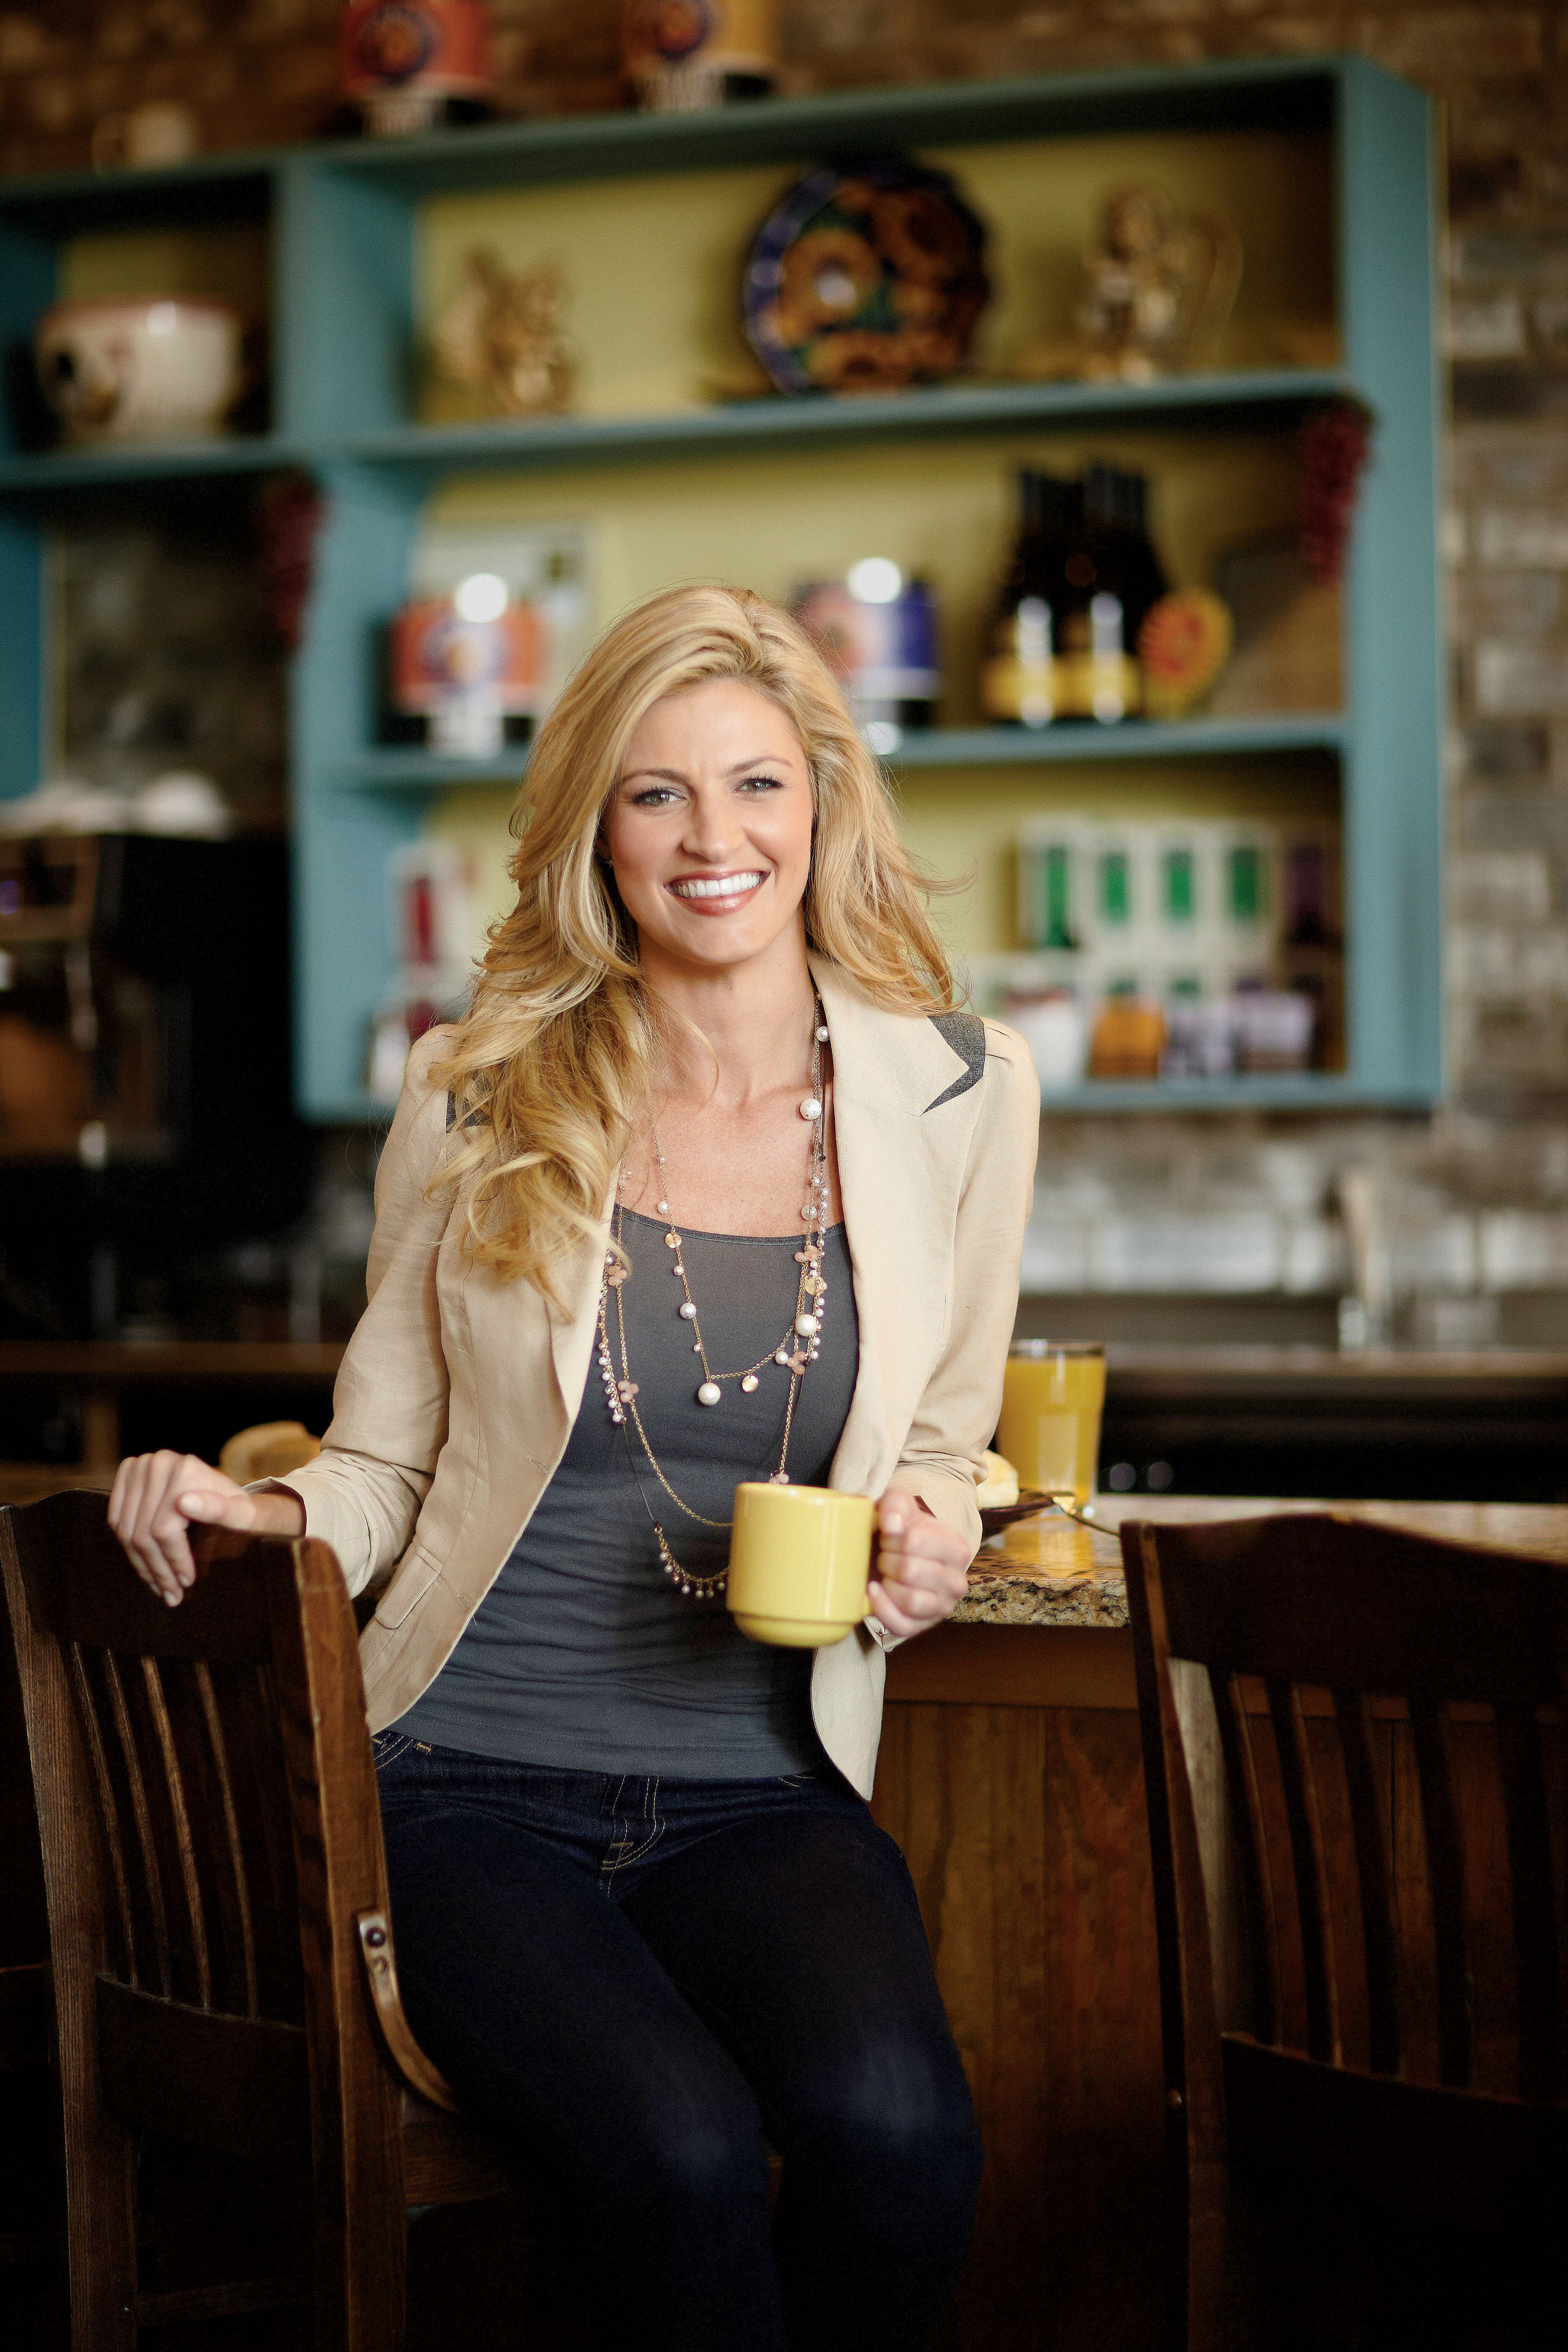 Paper Napkin Interview: Dishing with Erin Andrews